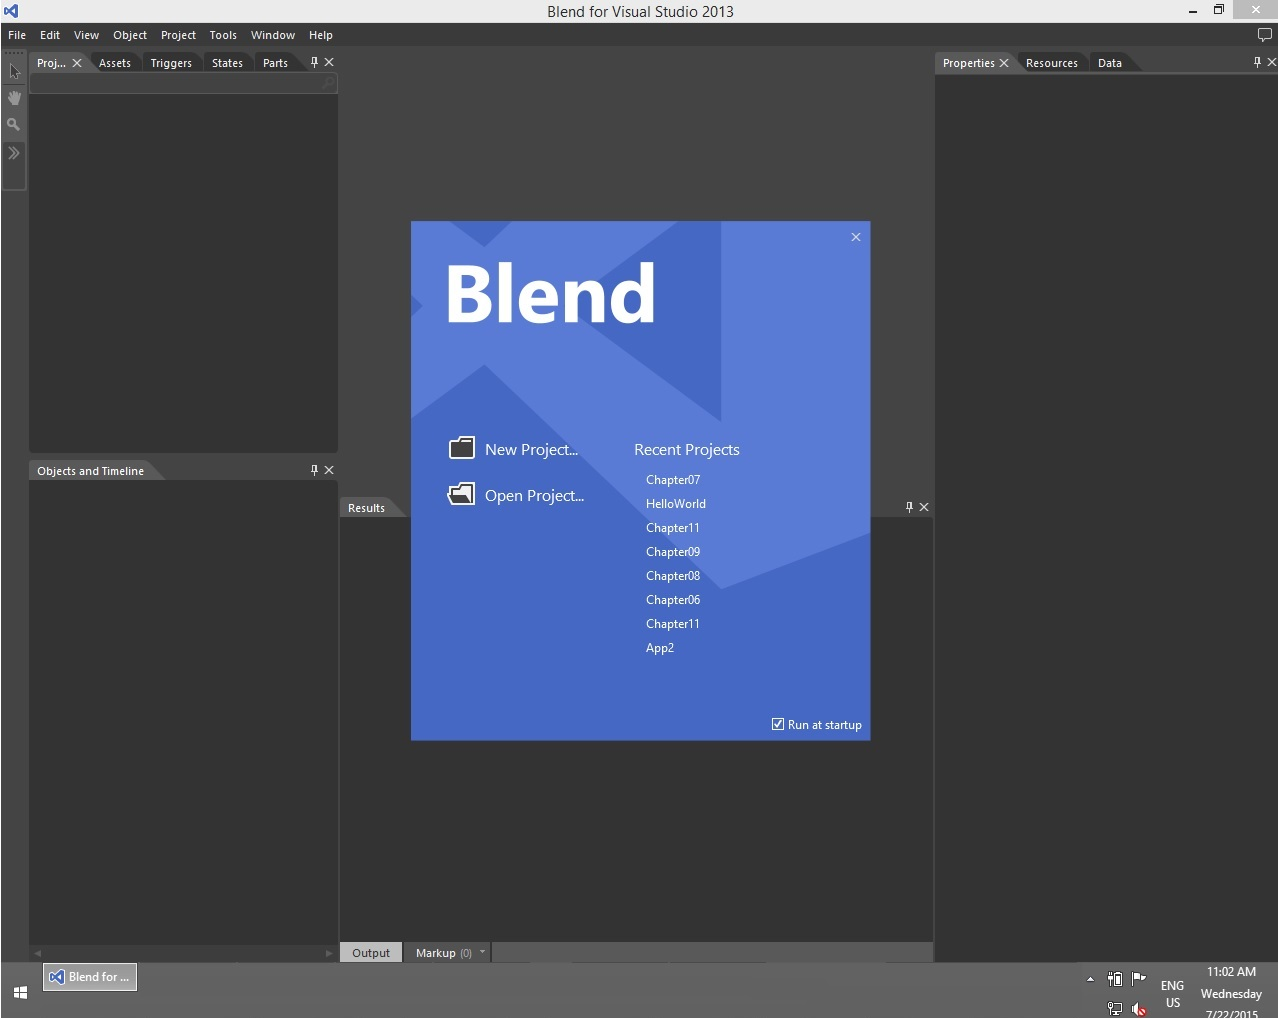 Blend on Windows 8